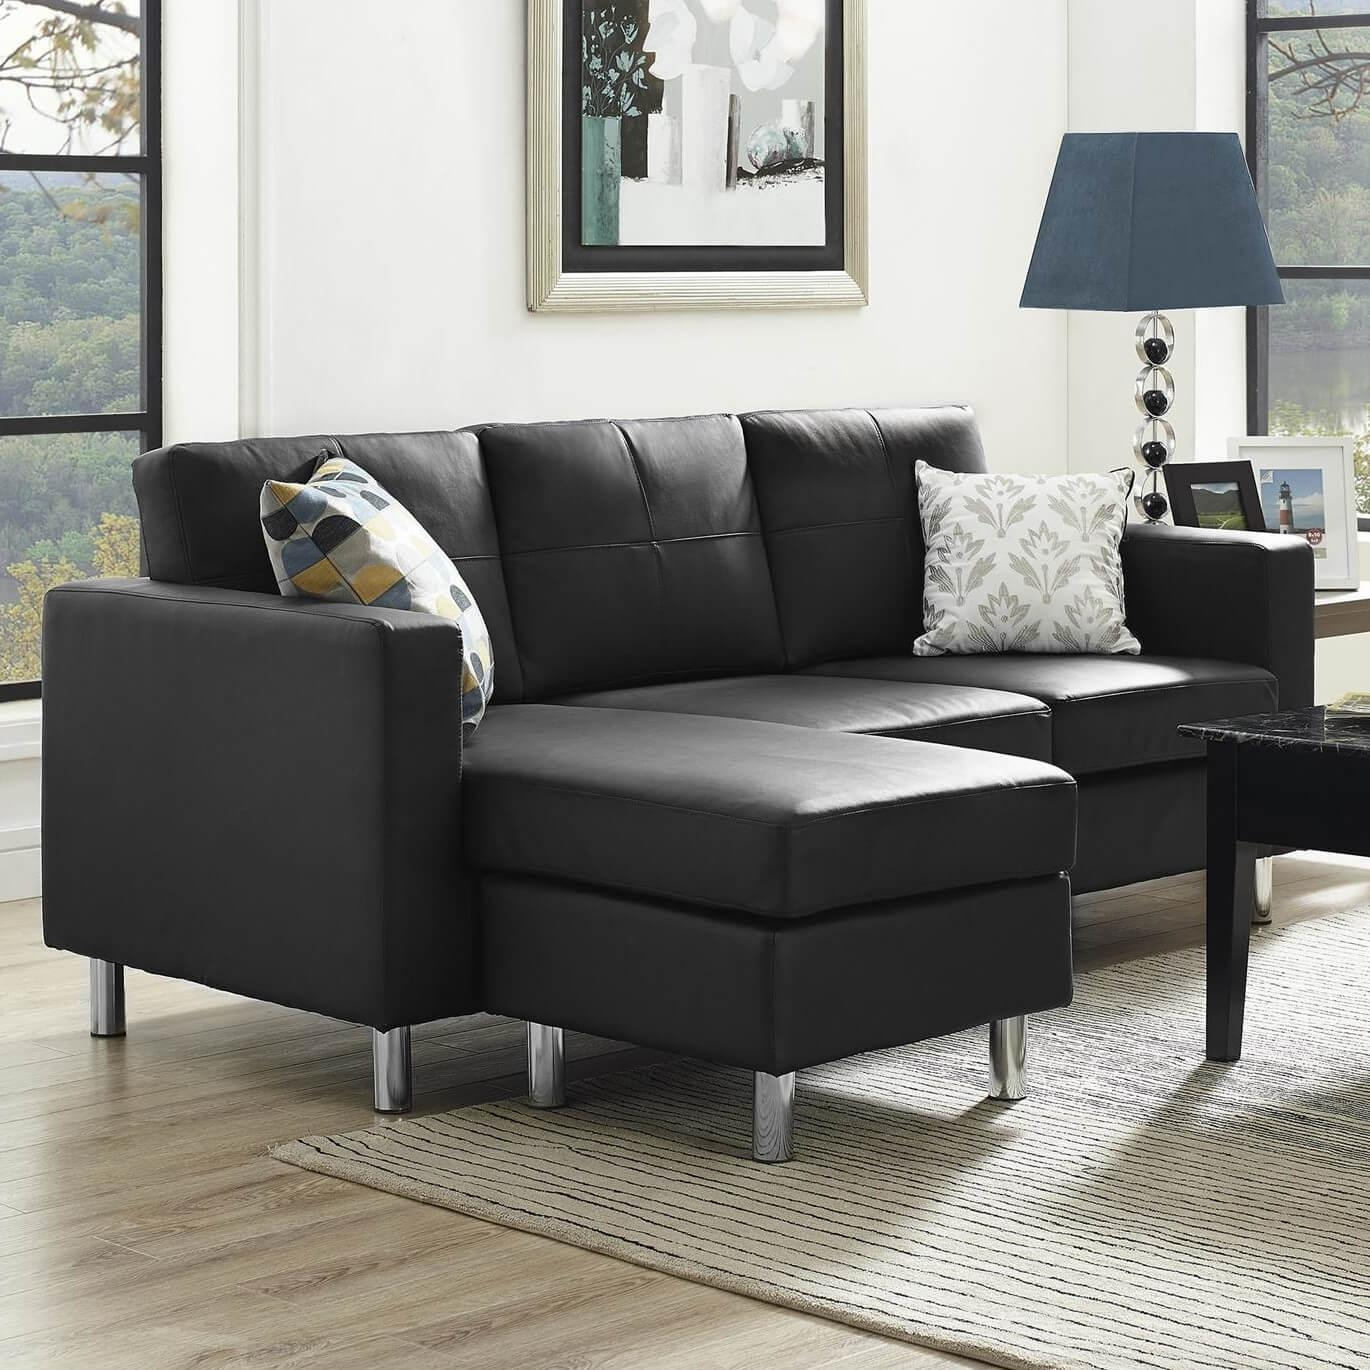 Small Sofas Under $500 20+ Choices Of Small Scale Leather Sectional Sofas | Sofa